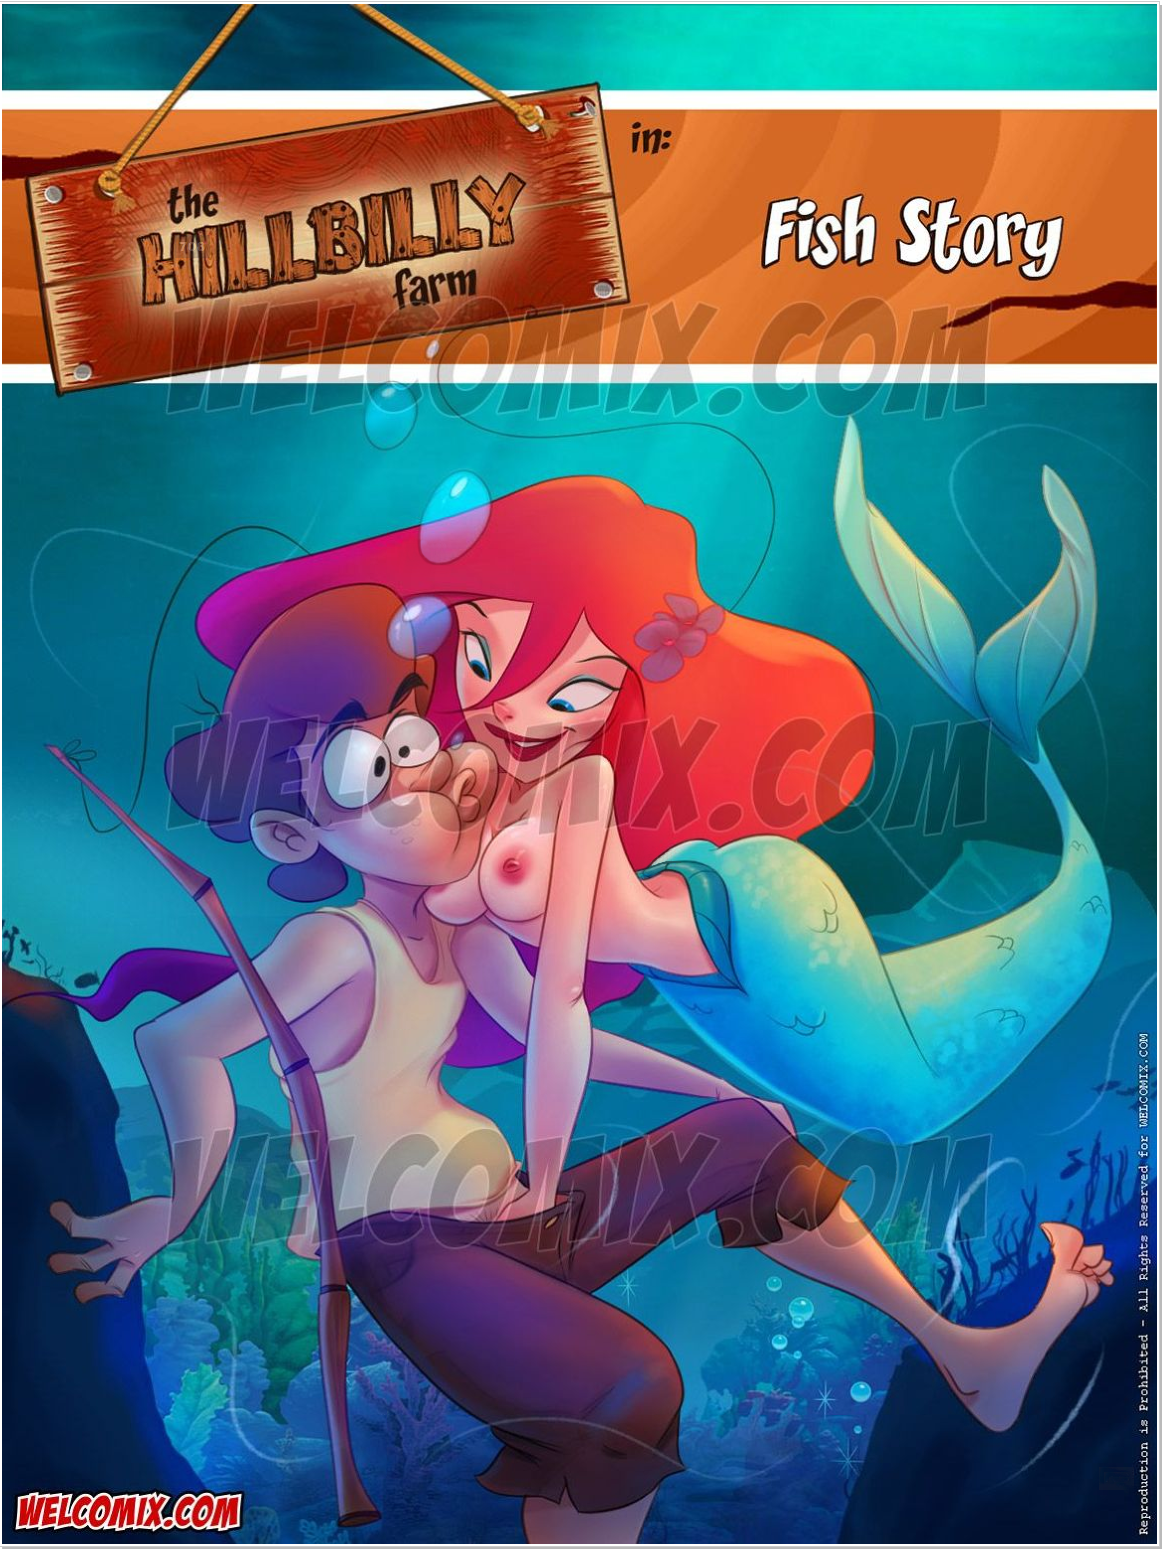 Goodcomix.tk The Little Mermaid - [WelComix] - The Hillbilly Farm #17 Fish Story